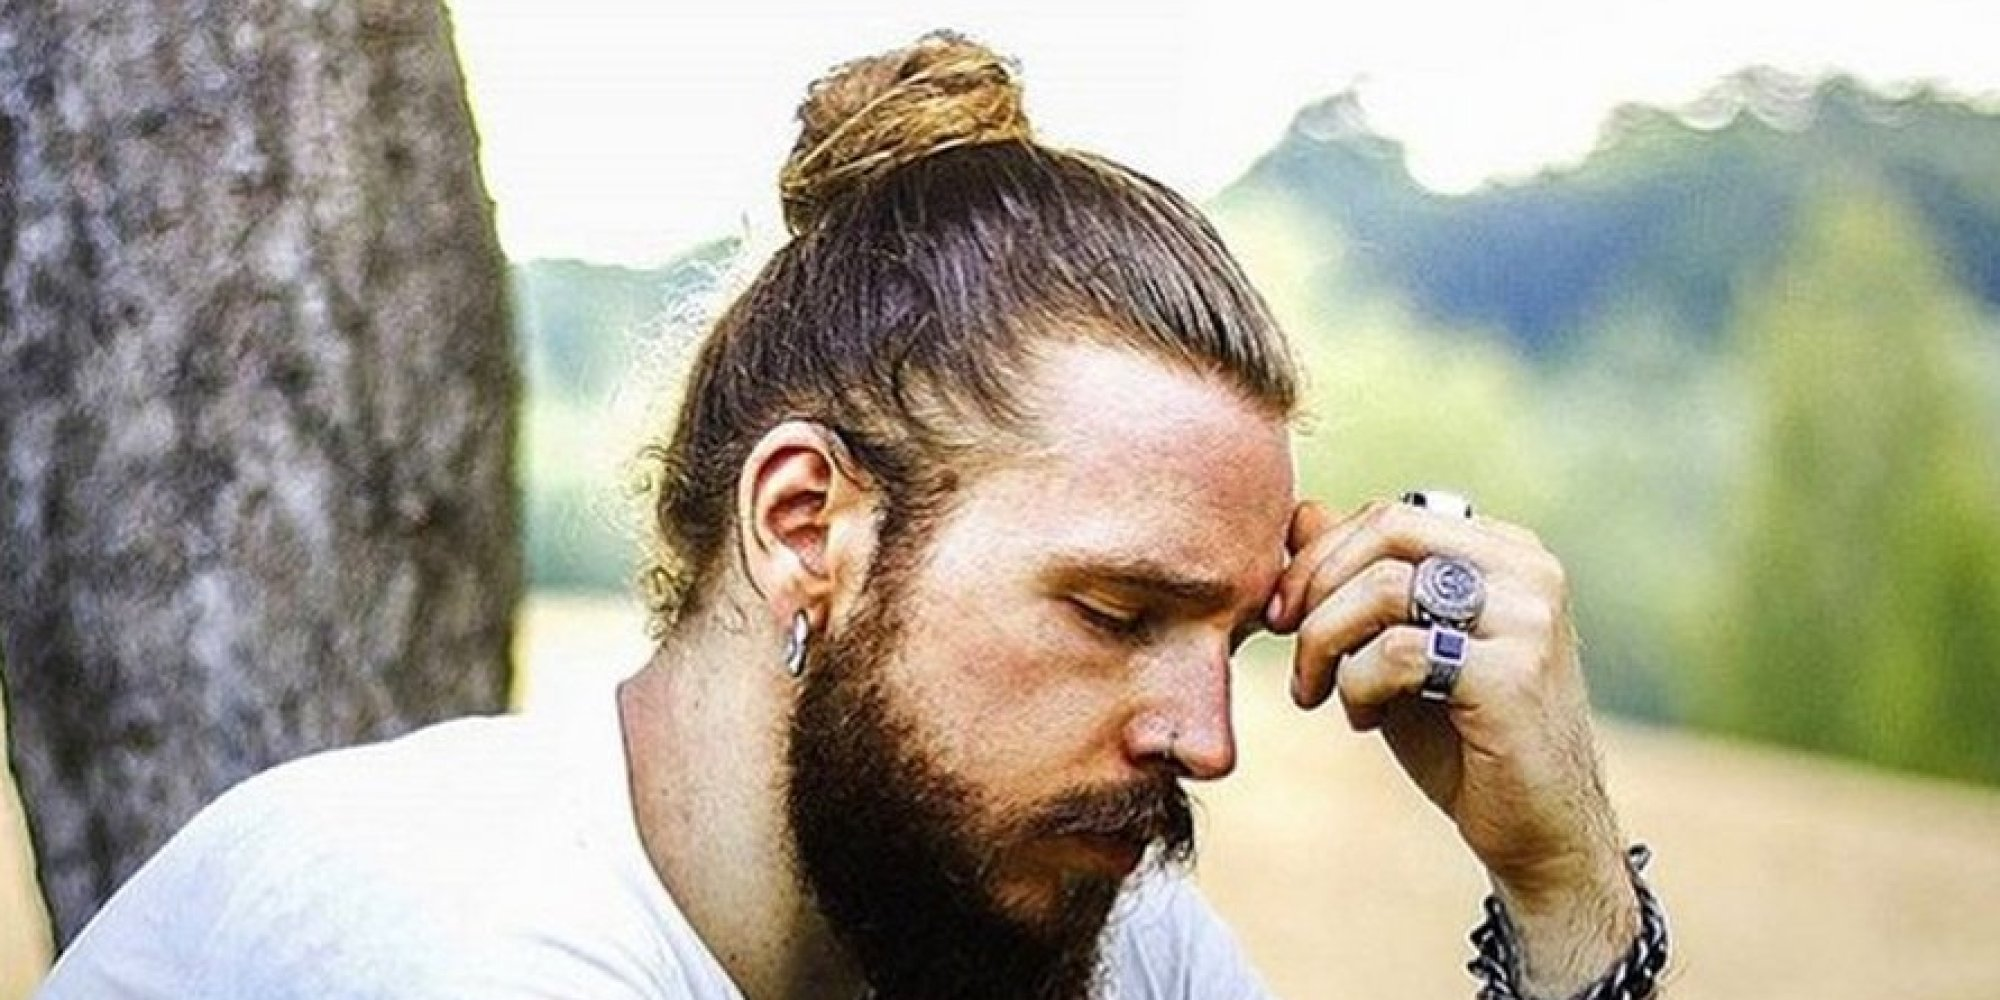 man buns may be making you bald try man braids instead huffpost uk. Black Bedroom Furniture Sets. Home Design Ideas